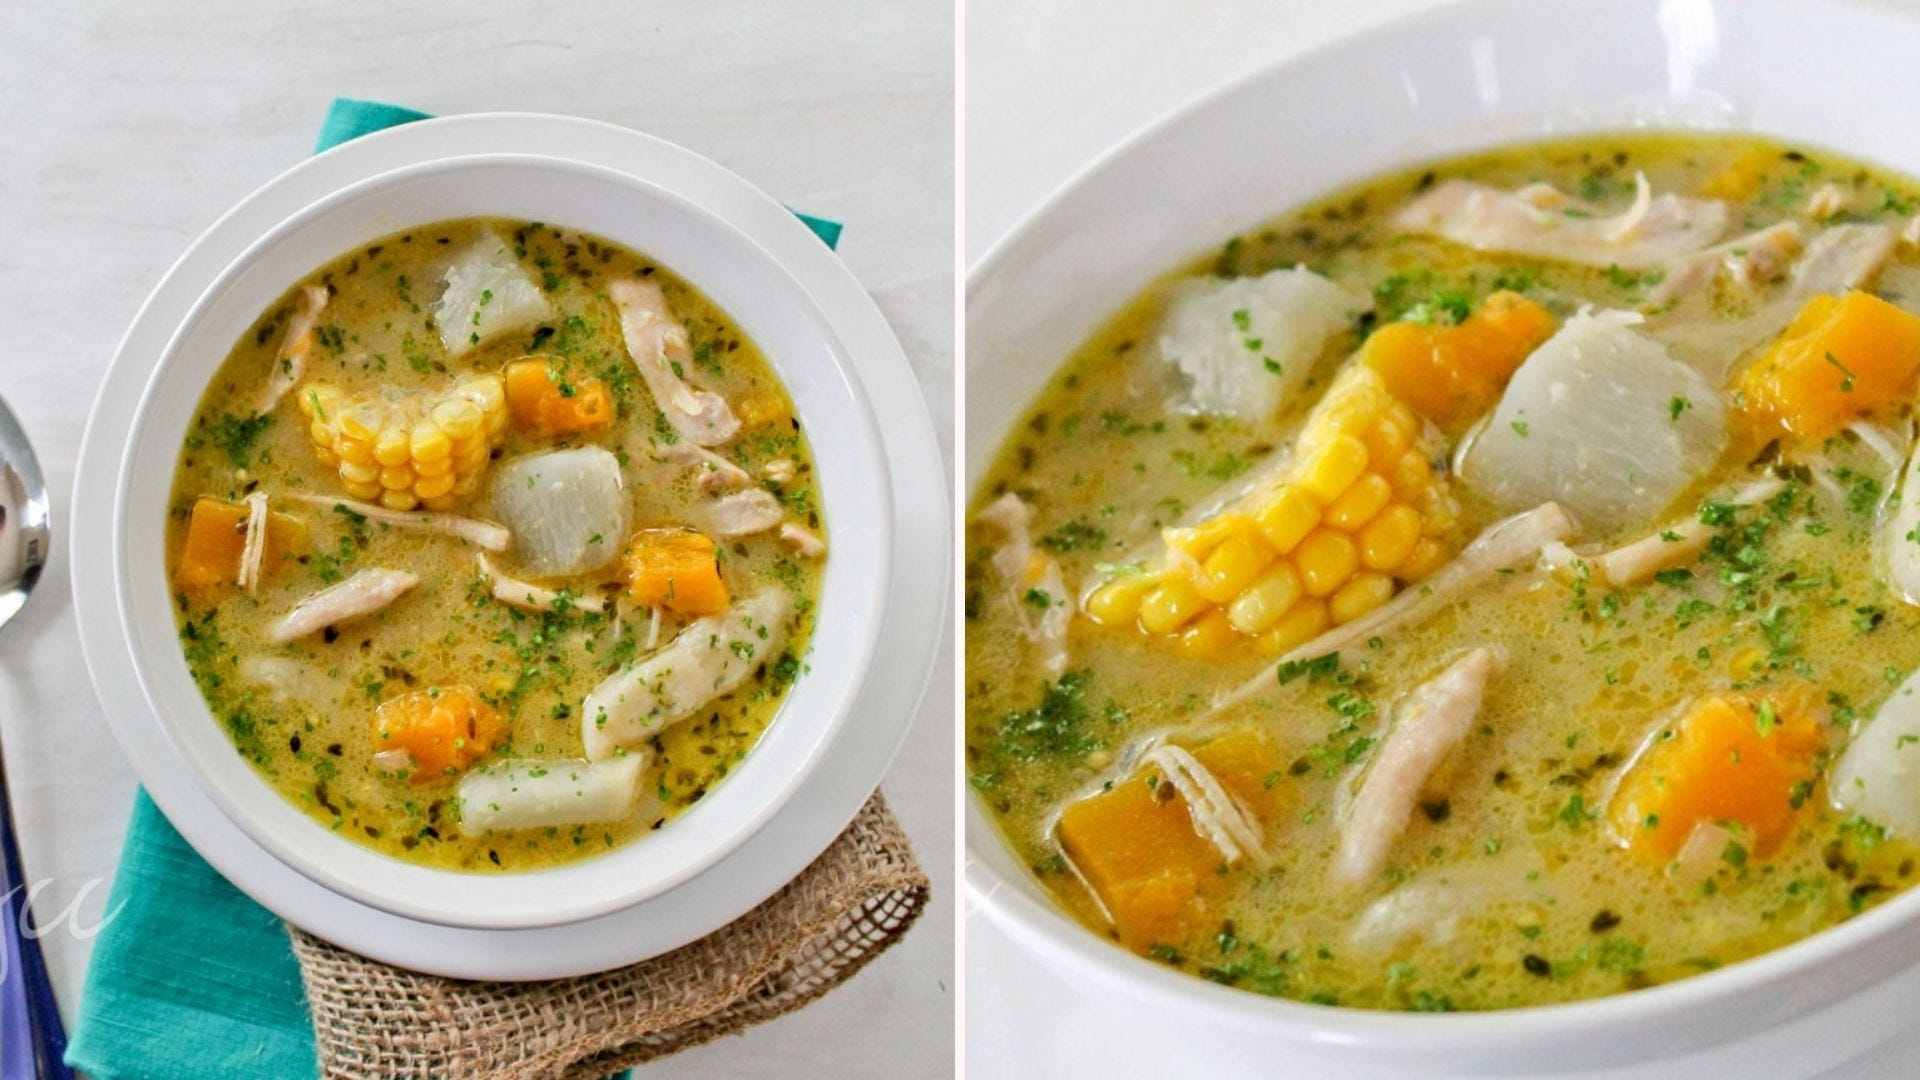 Two bowls of chicken soup with corn, carrots, and dumplings